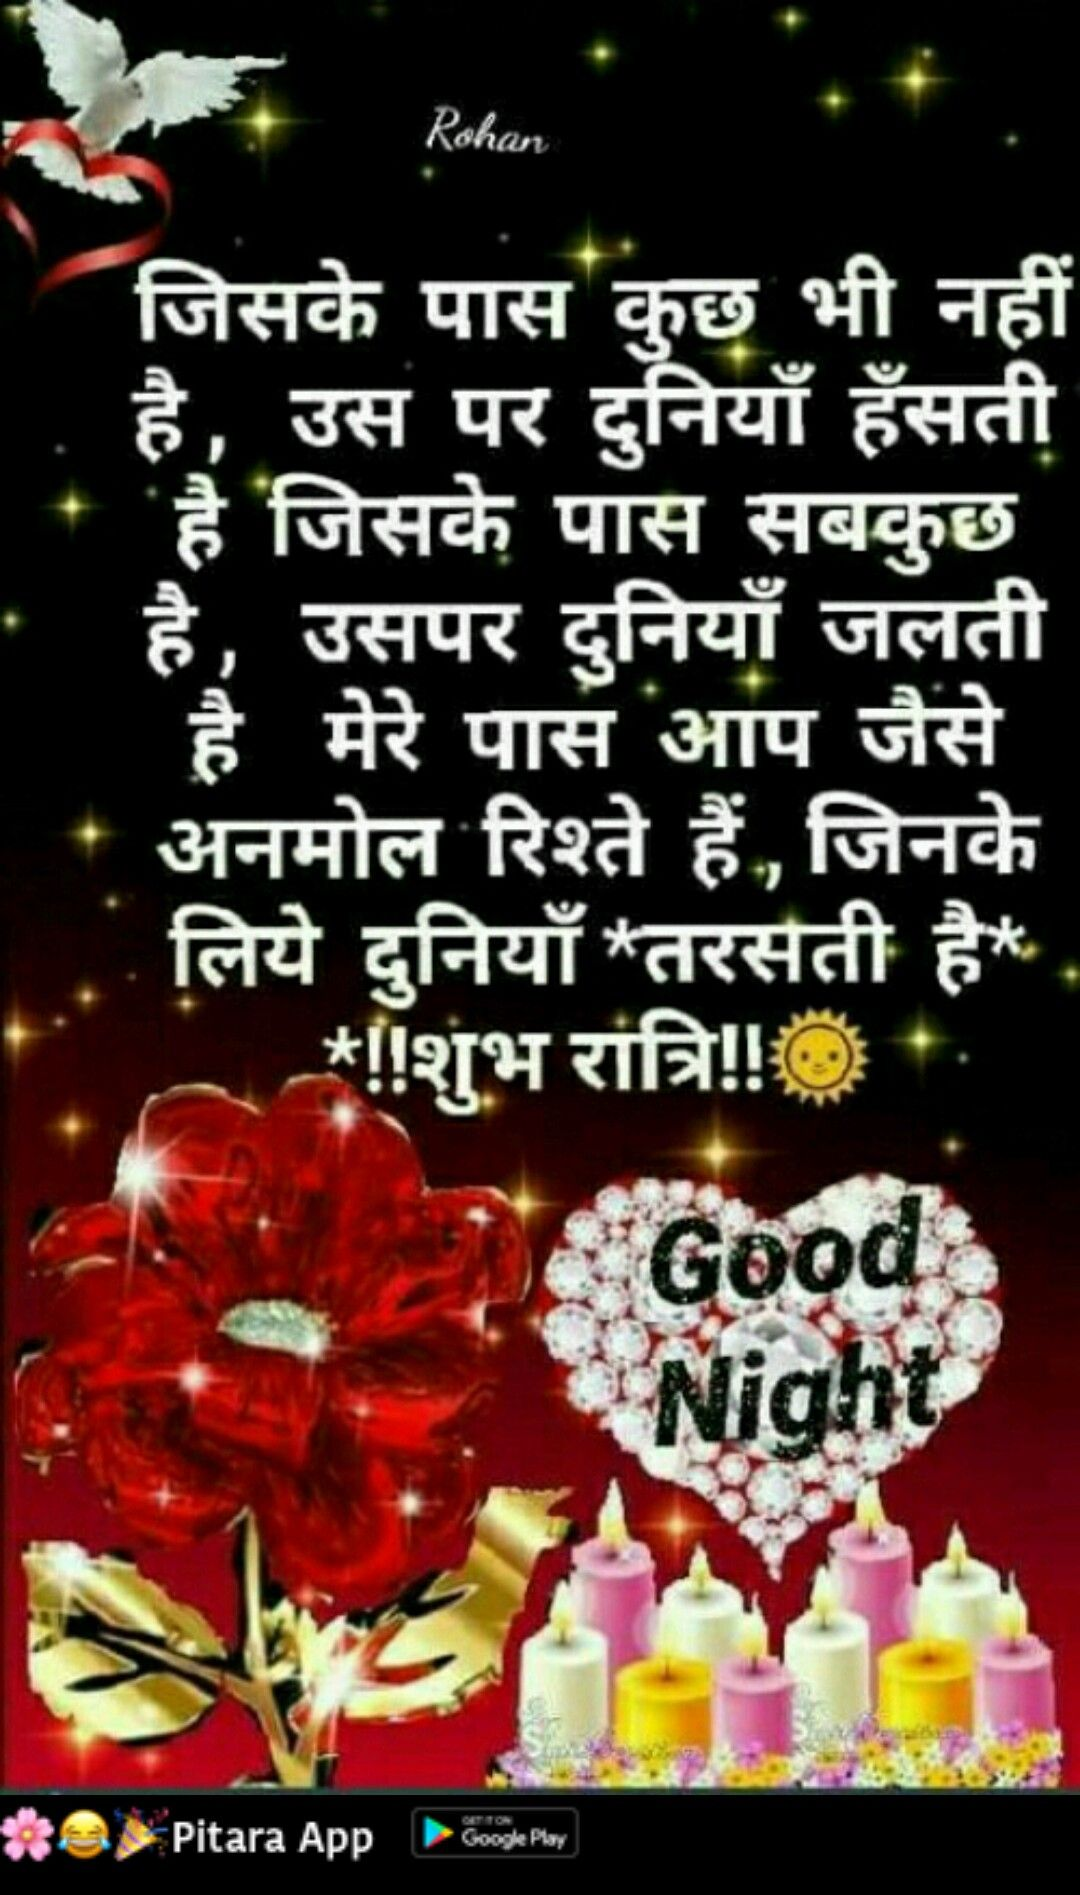 Pin By Praveen Pandey On Nights Good Night Quotes Good Night Sweet Dreams Good Day Wishes